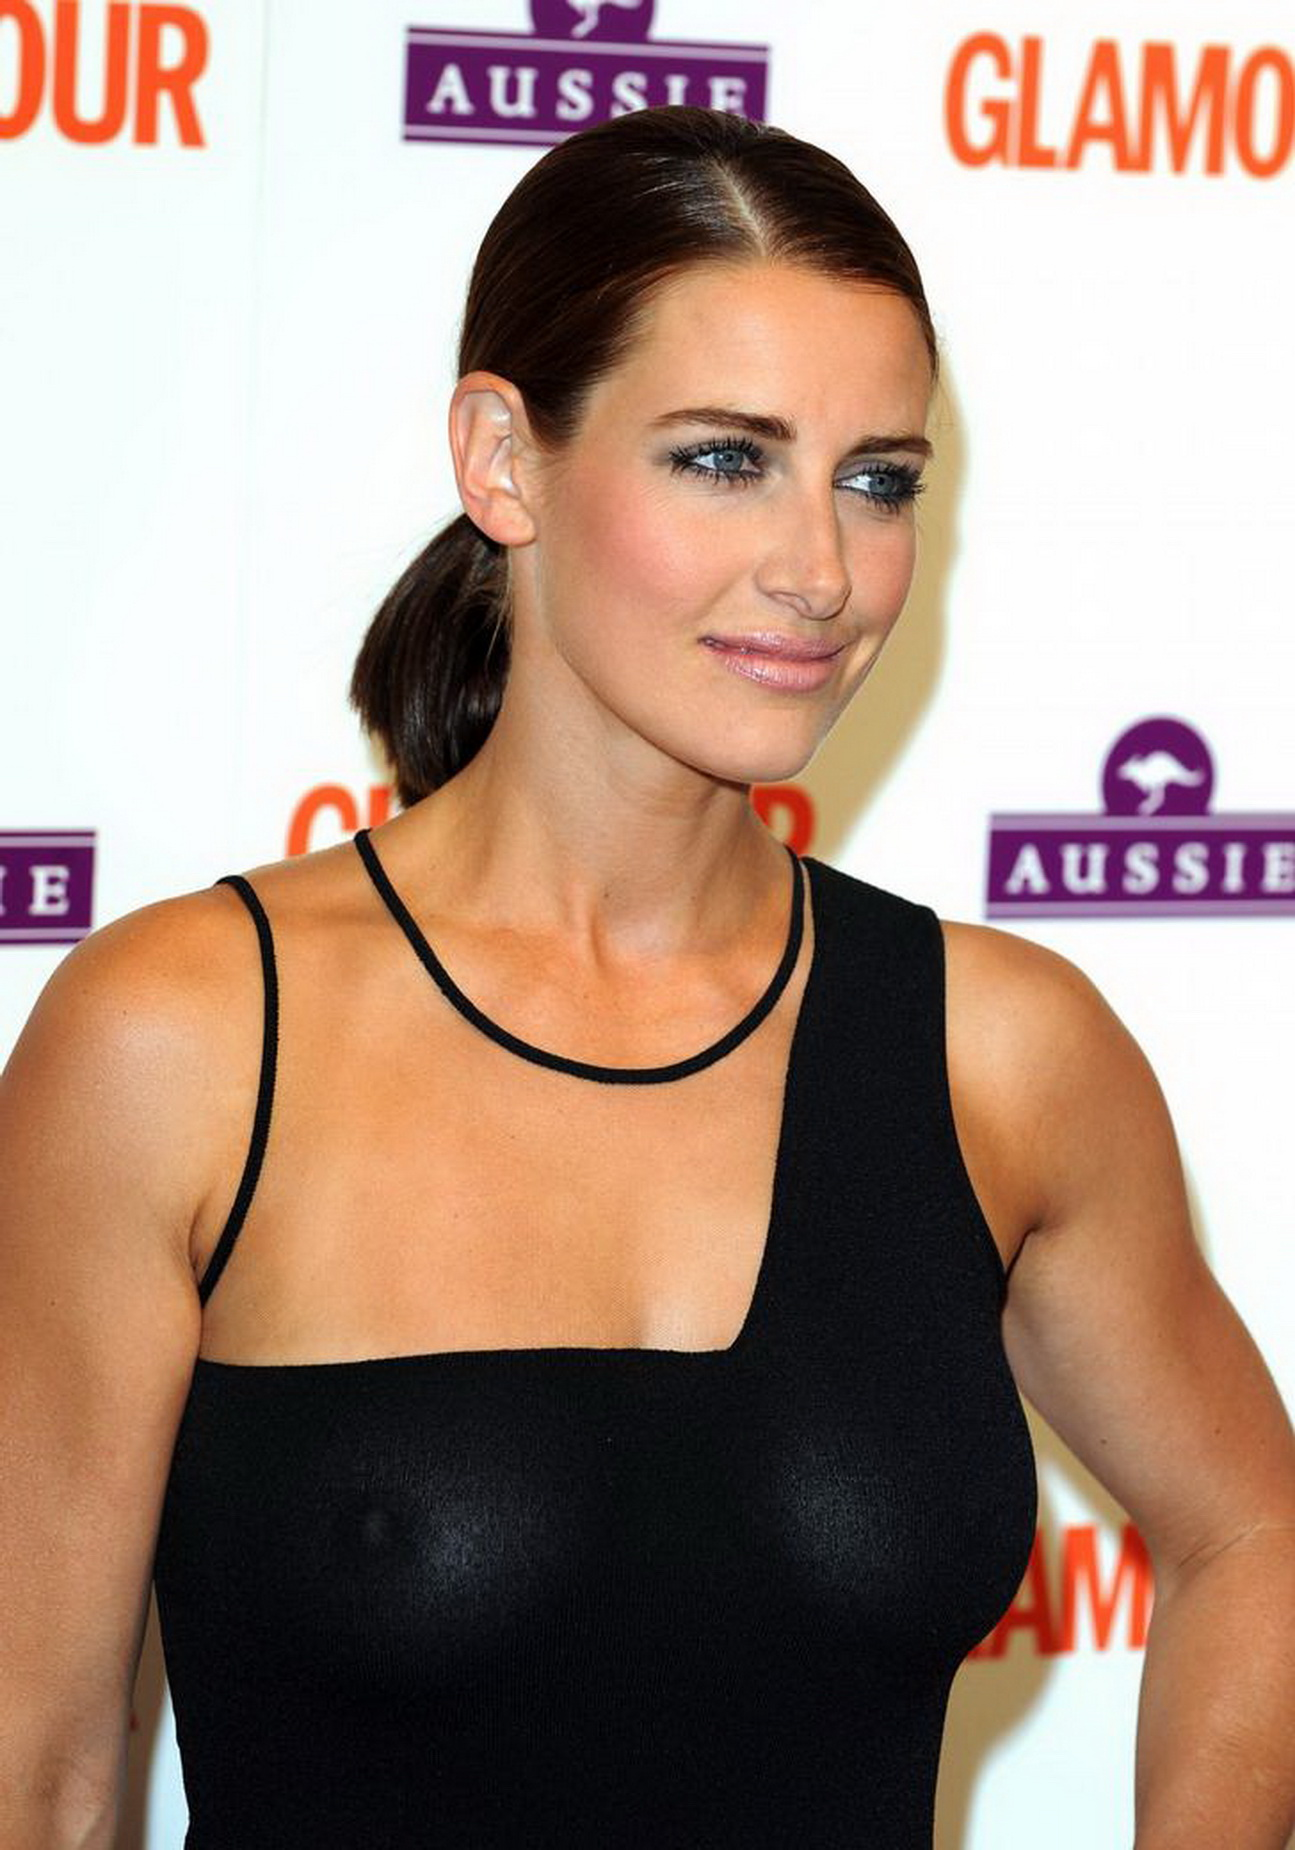 Leaked Kirsty Gallacher nude photos 2019